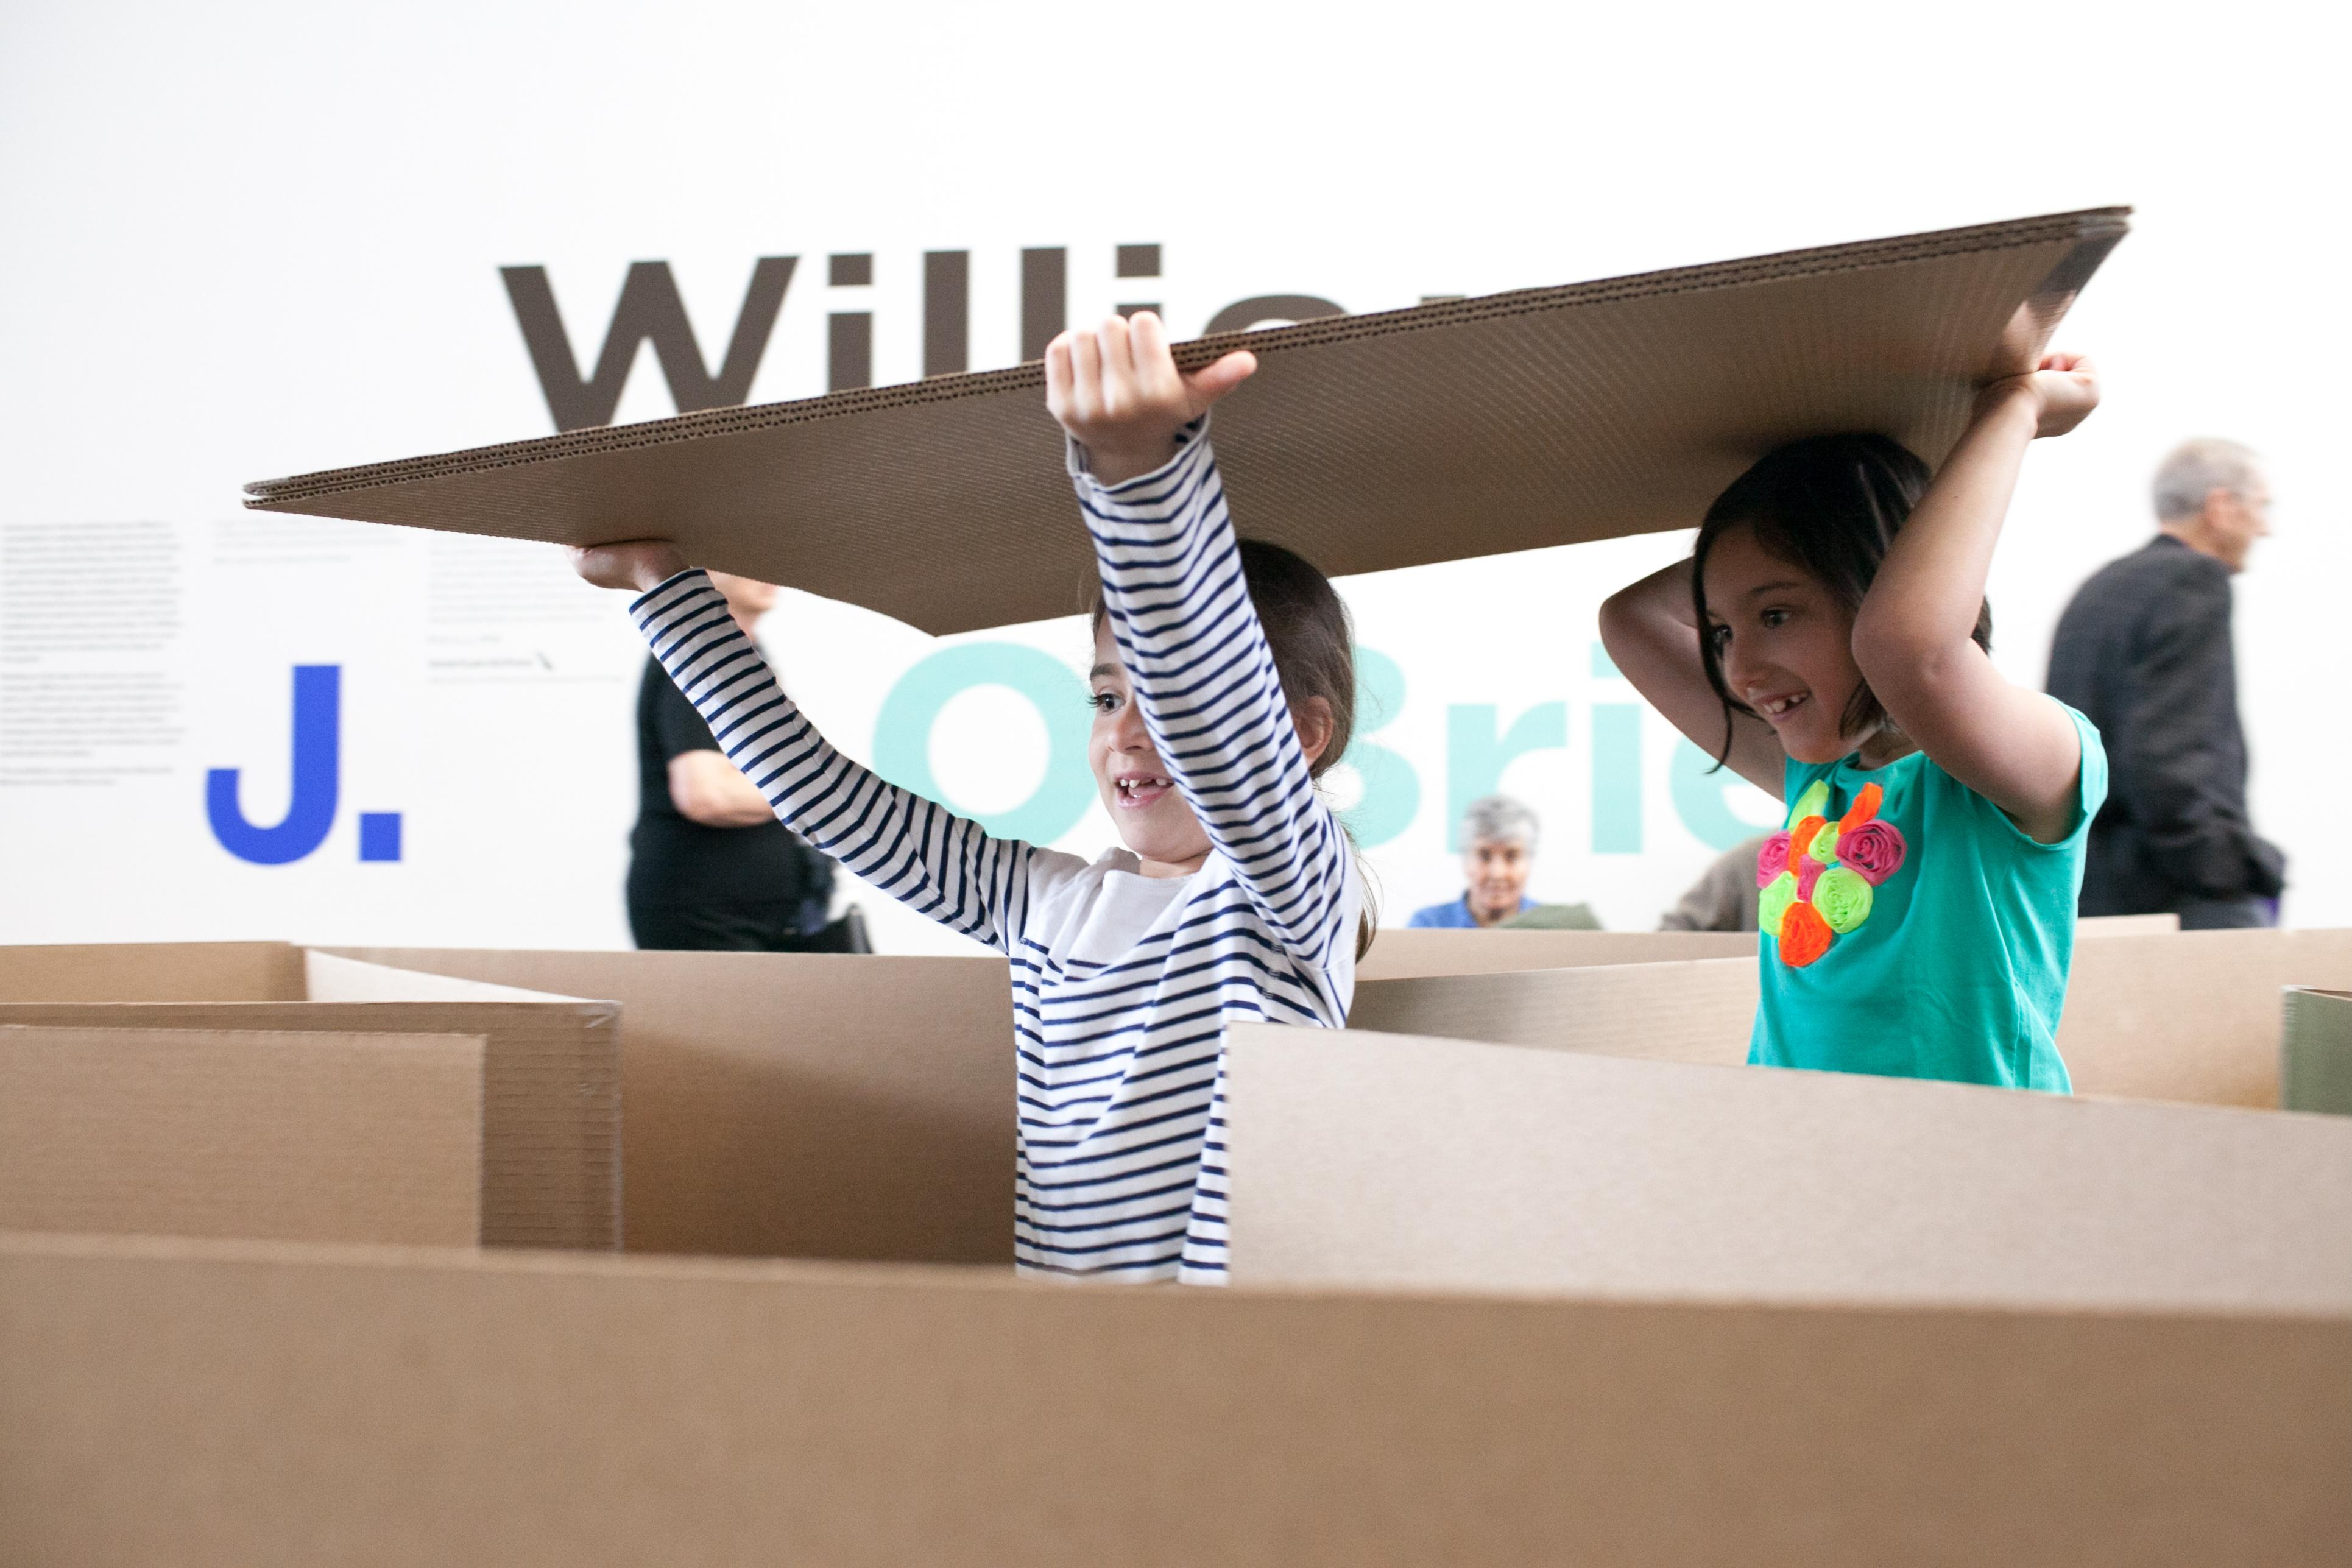 Two girls carry a sheet of cardboard above their heads as they wander through a cardboard maze. Their eyes are filled with wonder as they explore the maze.